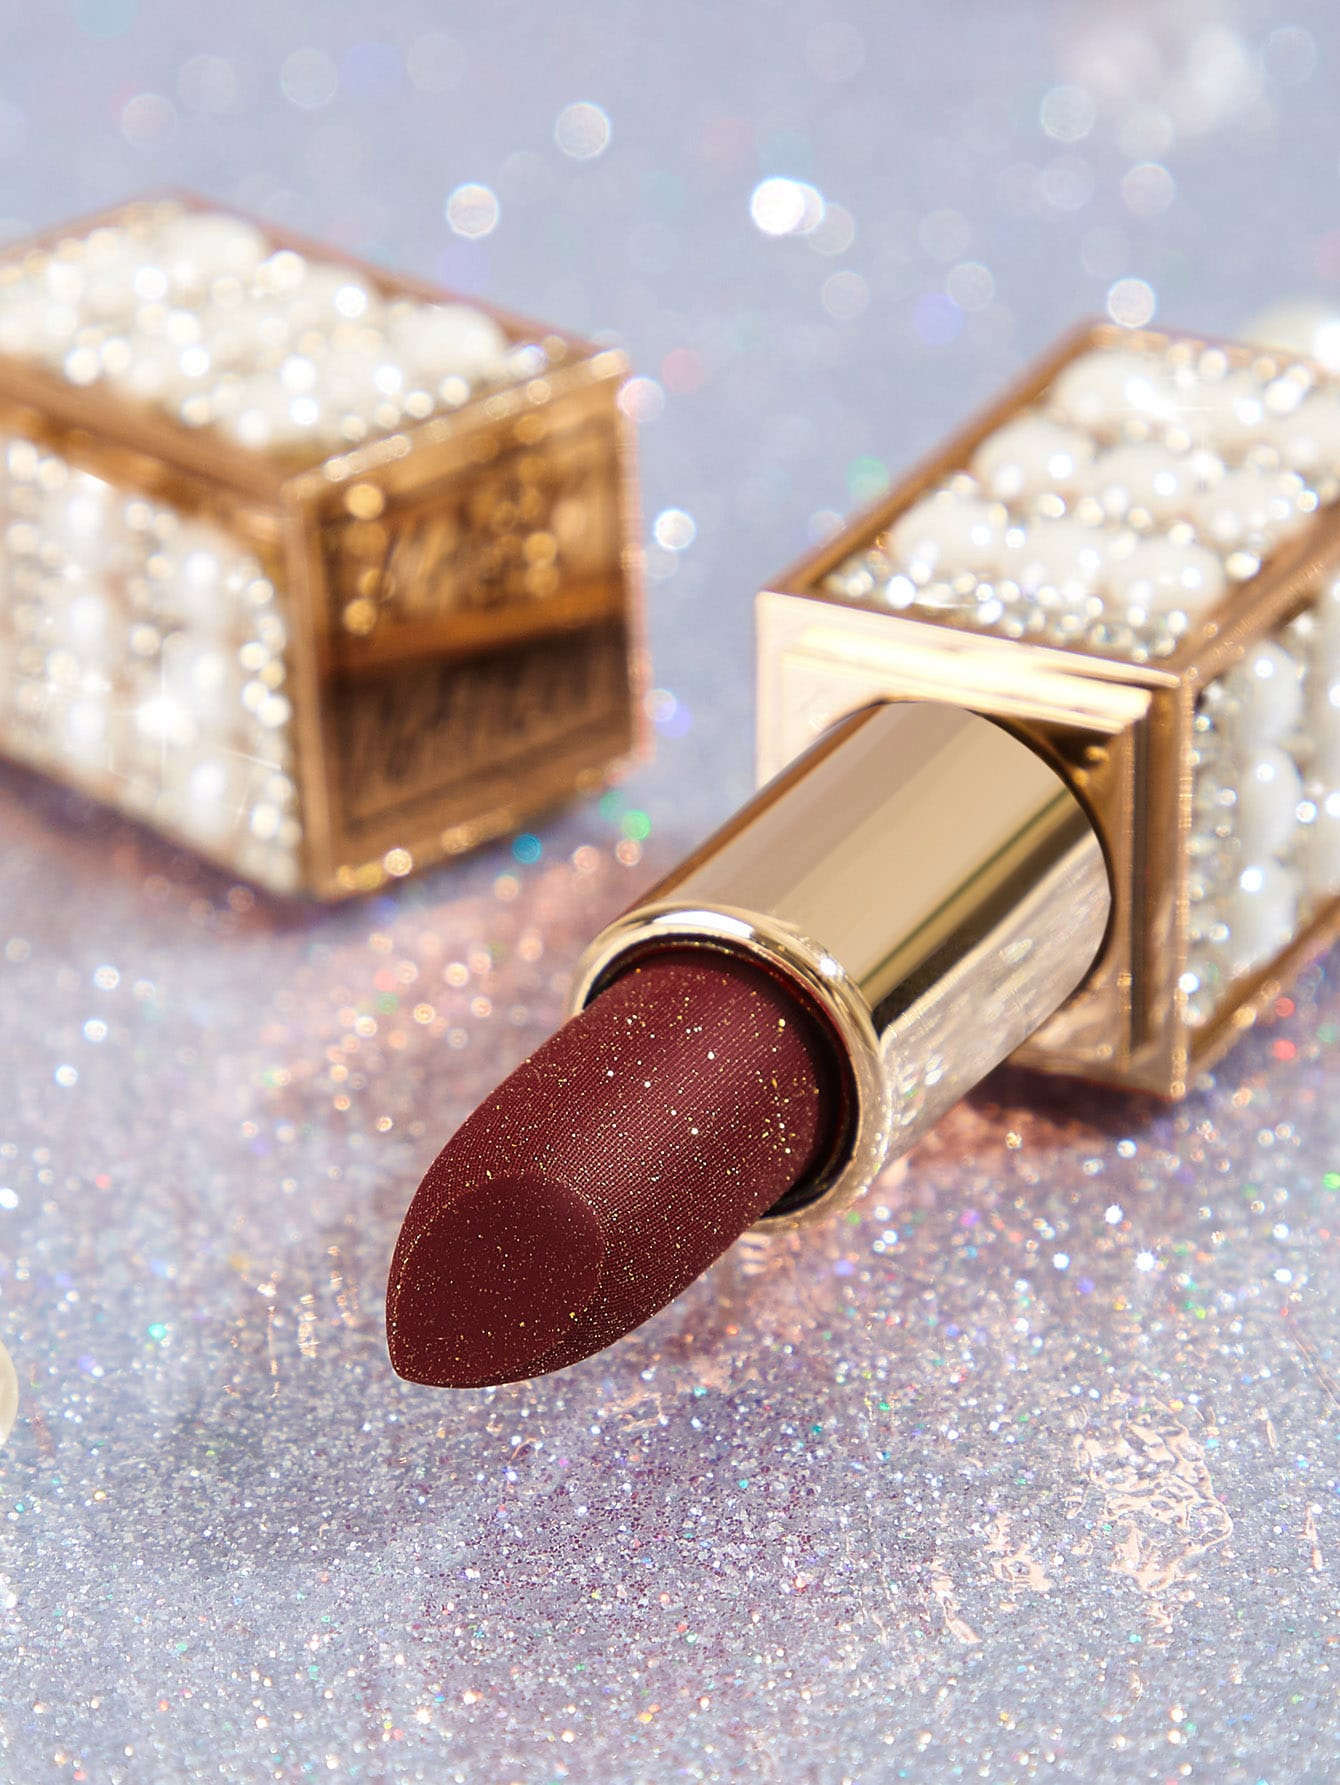 Star Shine Velvet Glitter Lipstick Apple Color